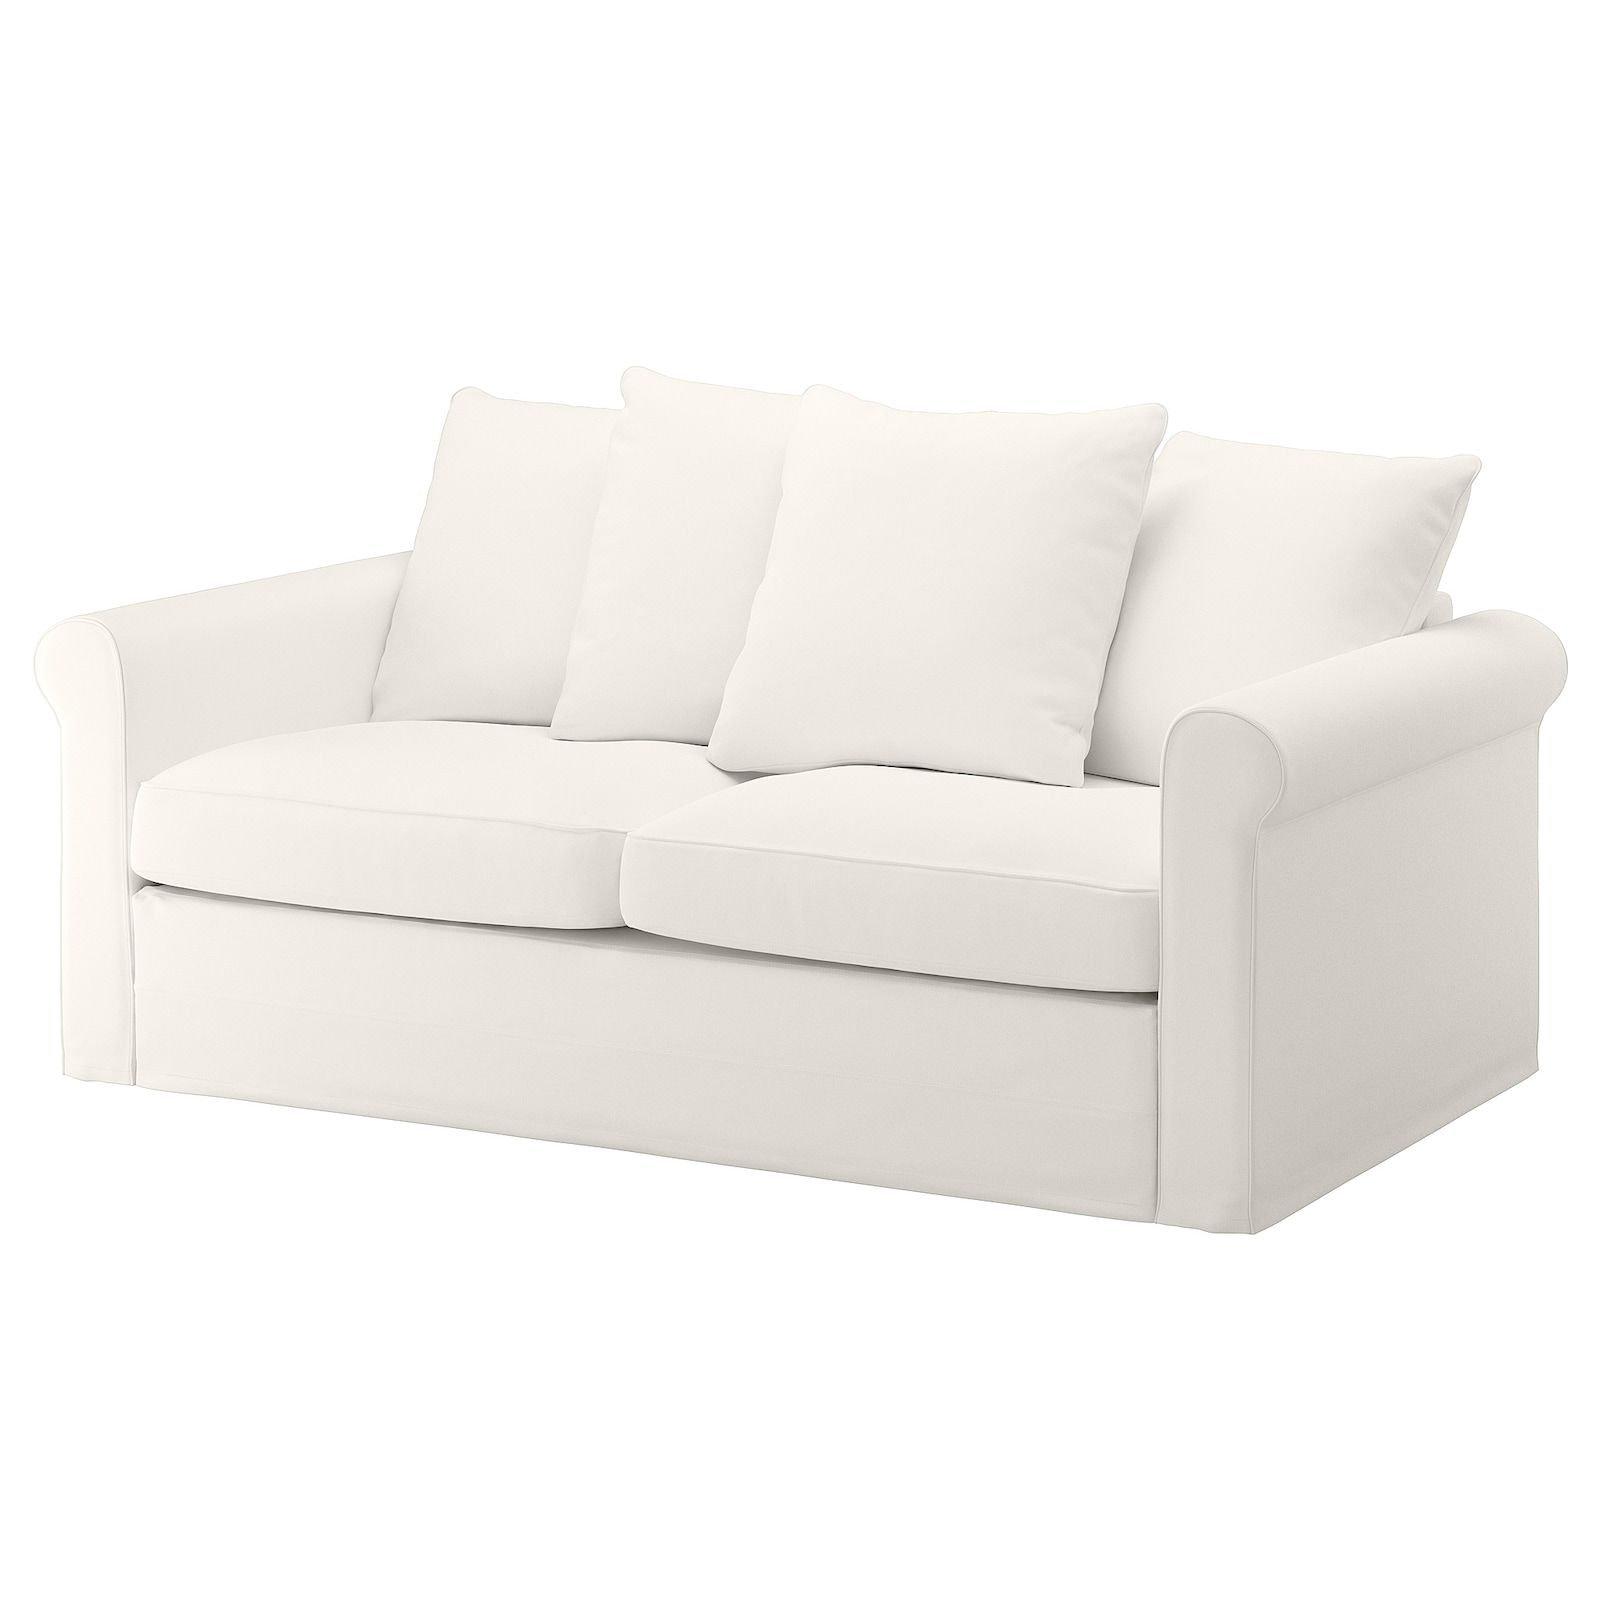 Gronlid Inseros White 2 Seat Sofa Bed Ikea In 2020 Sleeper Sofa Sofa Bed Sofa Back Cushions